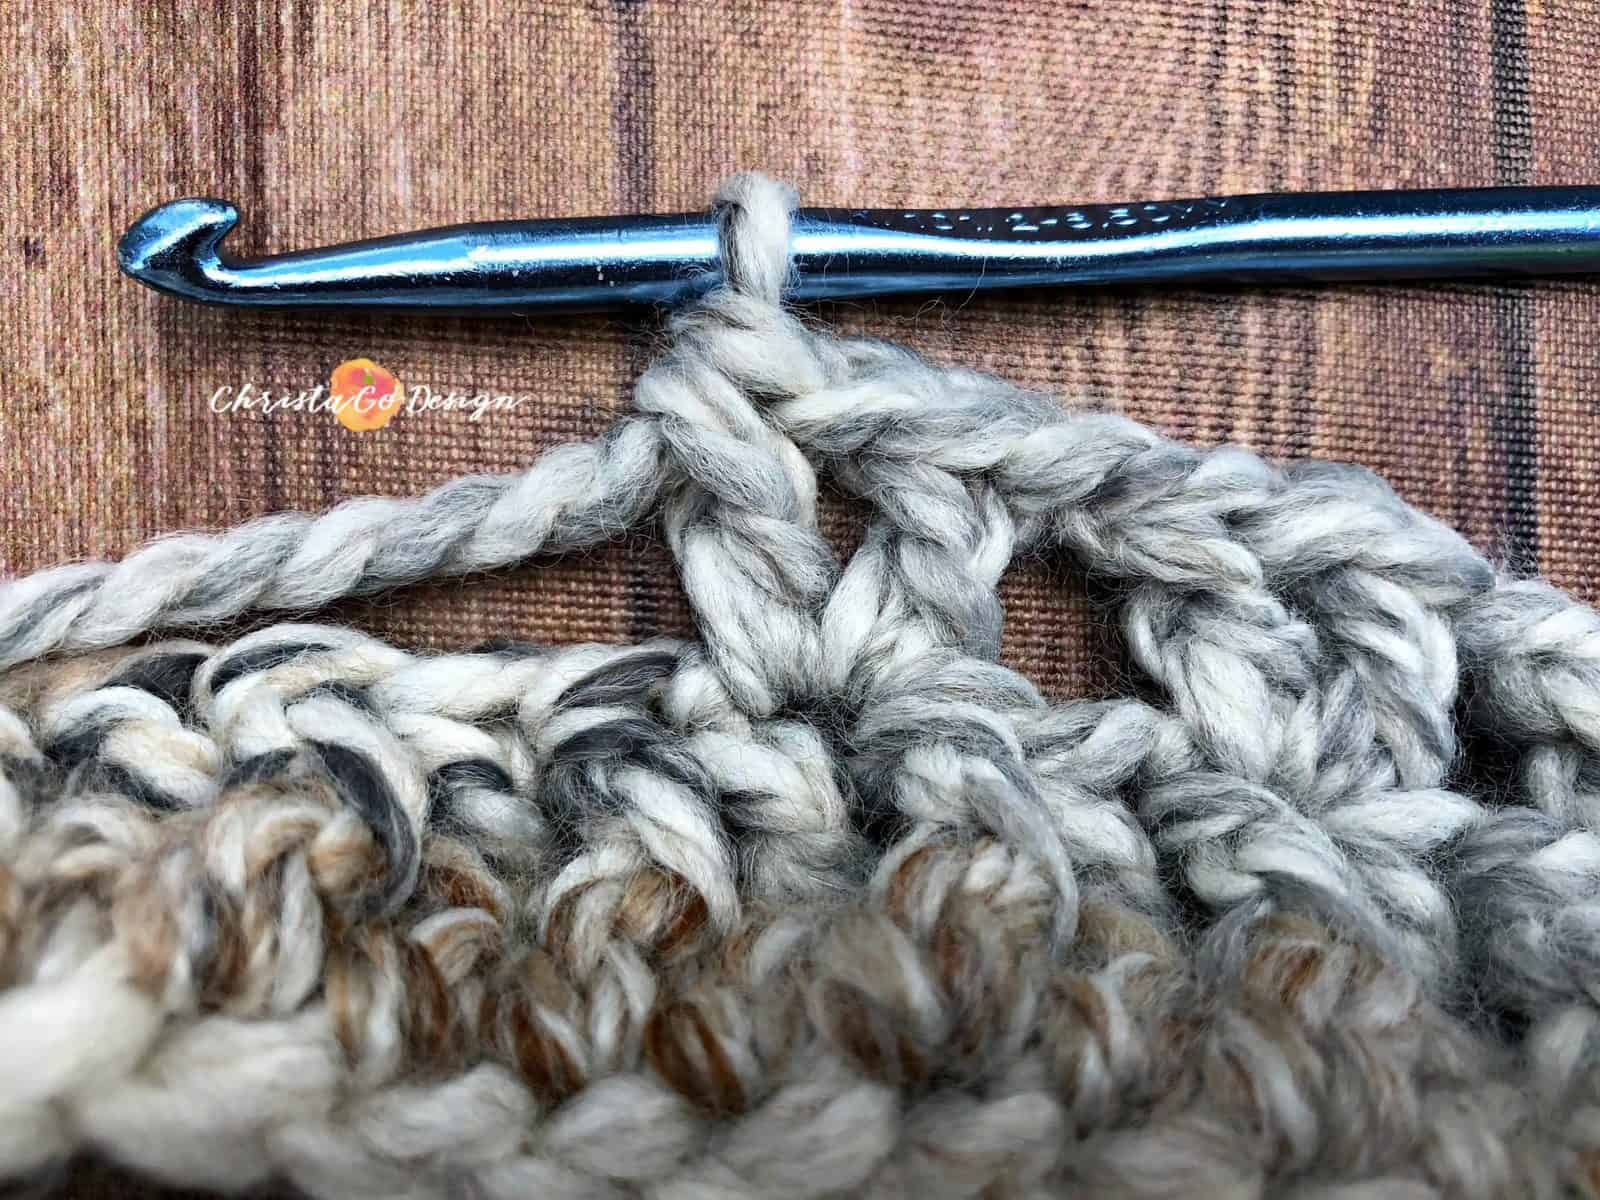 V-Stitch Crochet Photo Tutorial